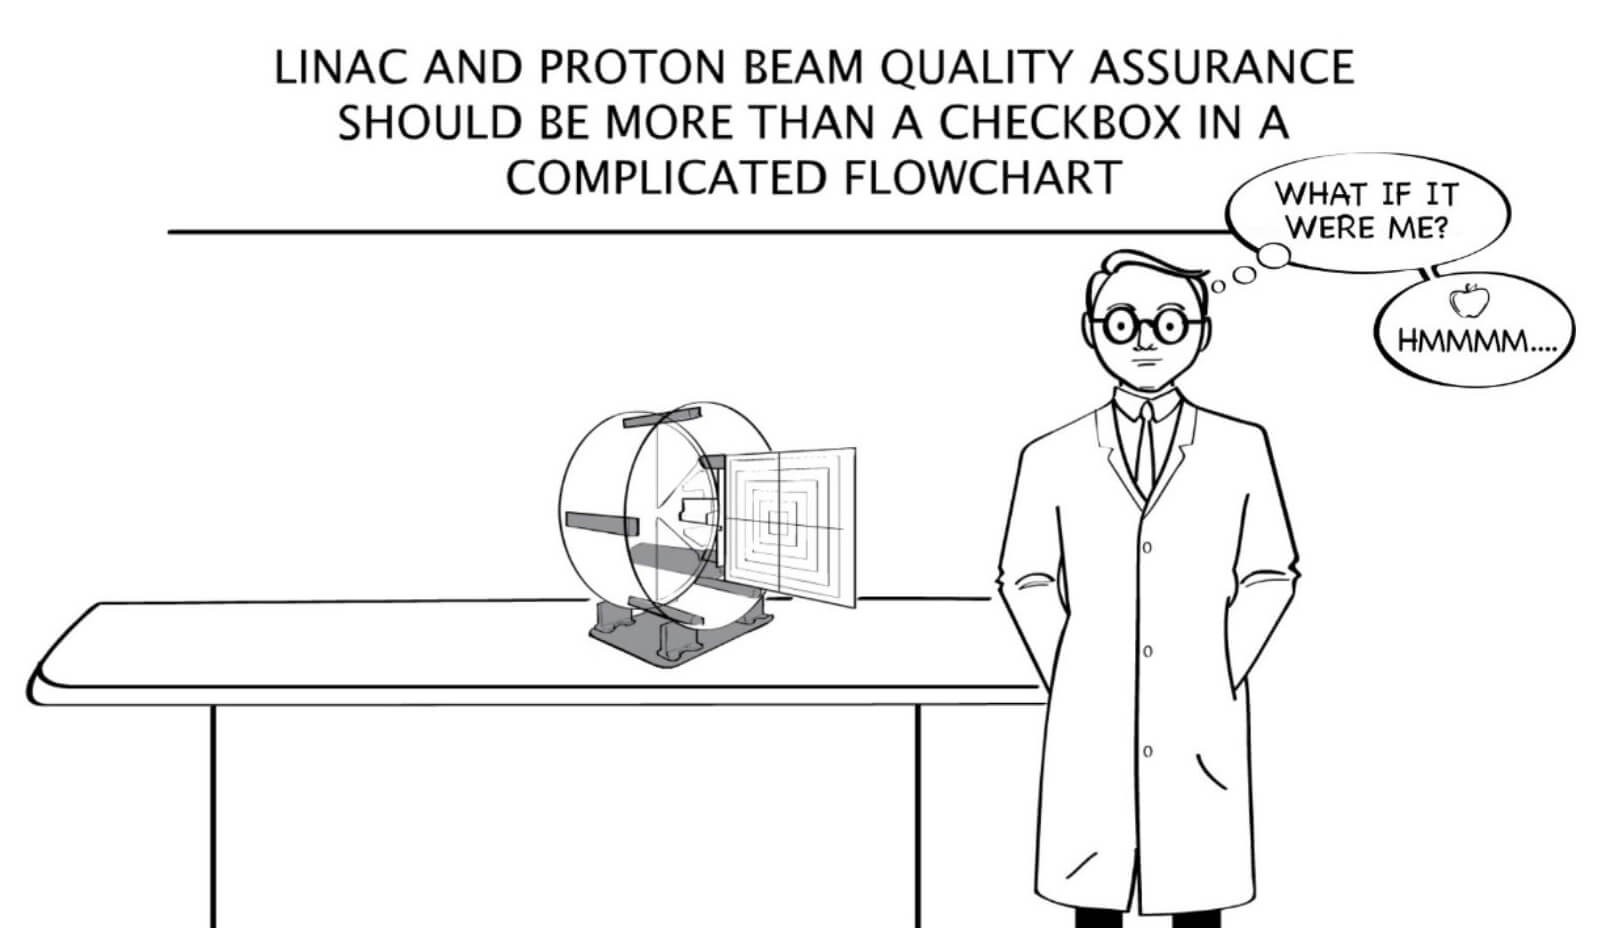 Linac and proton beam quality assurance should be more than a checkbox in a complicated flowchart.